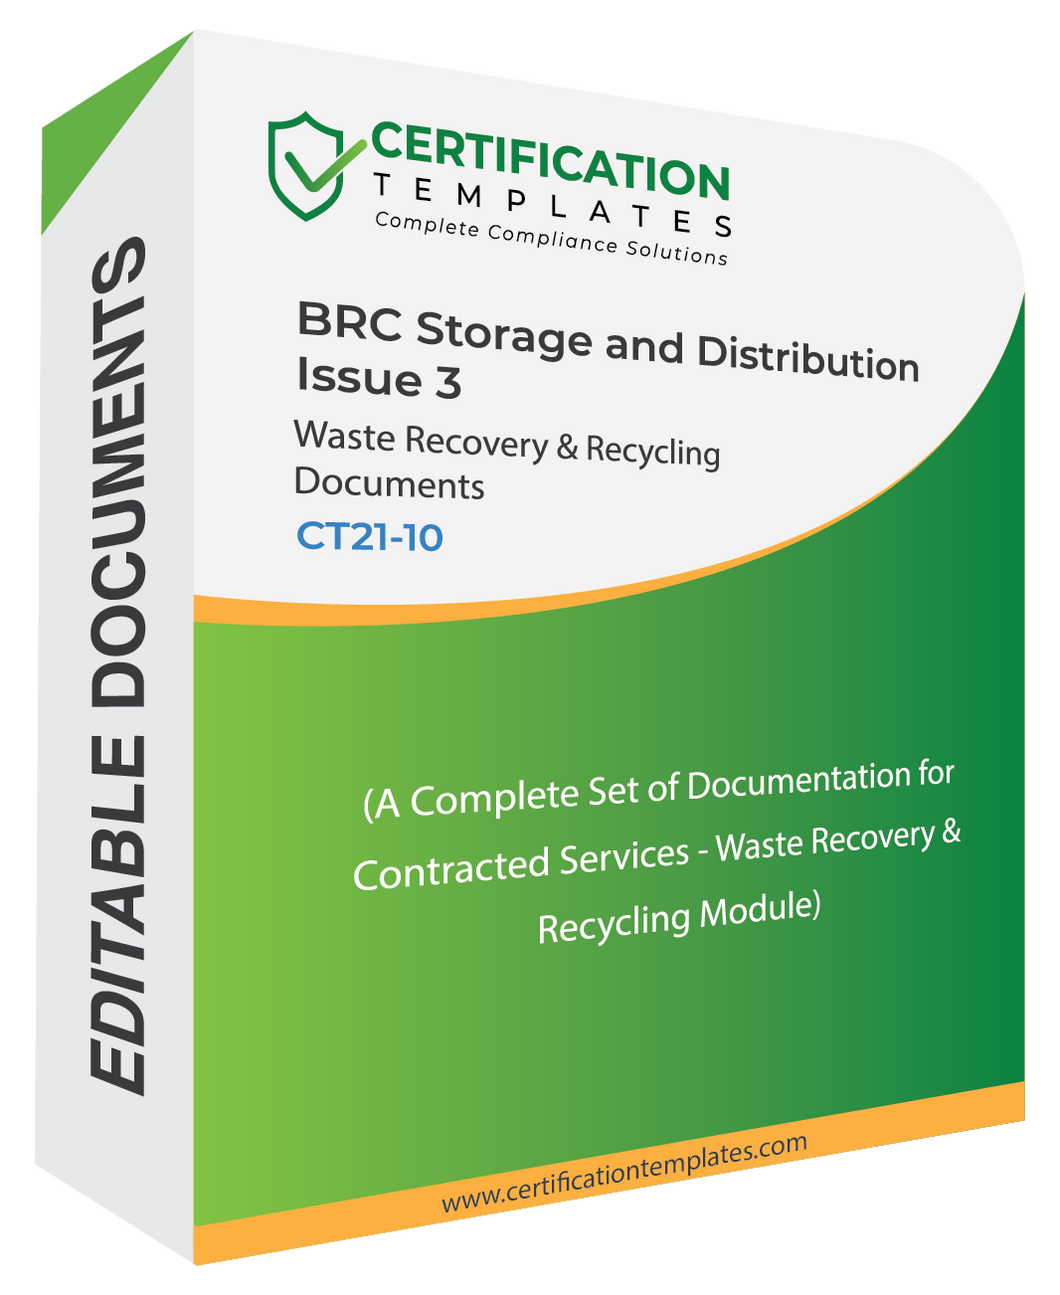 BRC S&D Waste Recovery & Recycling